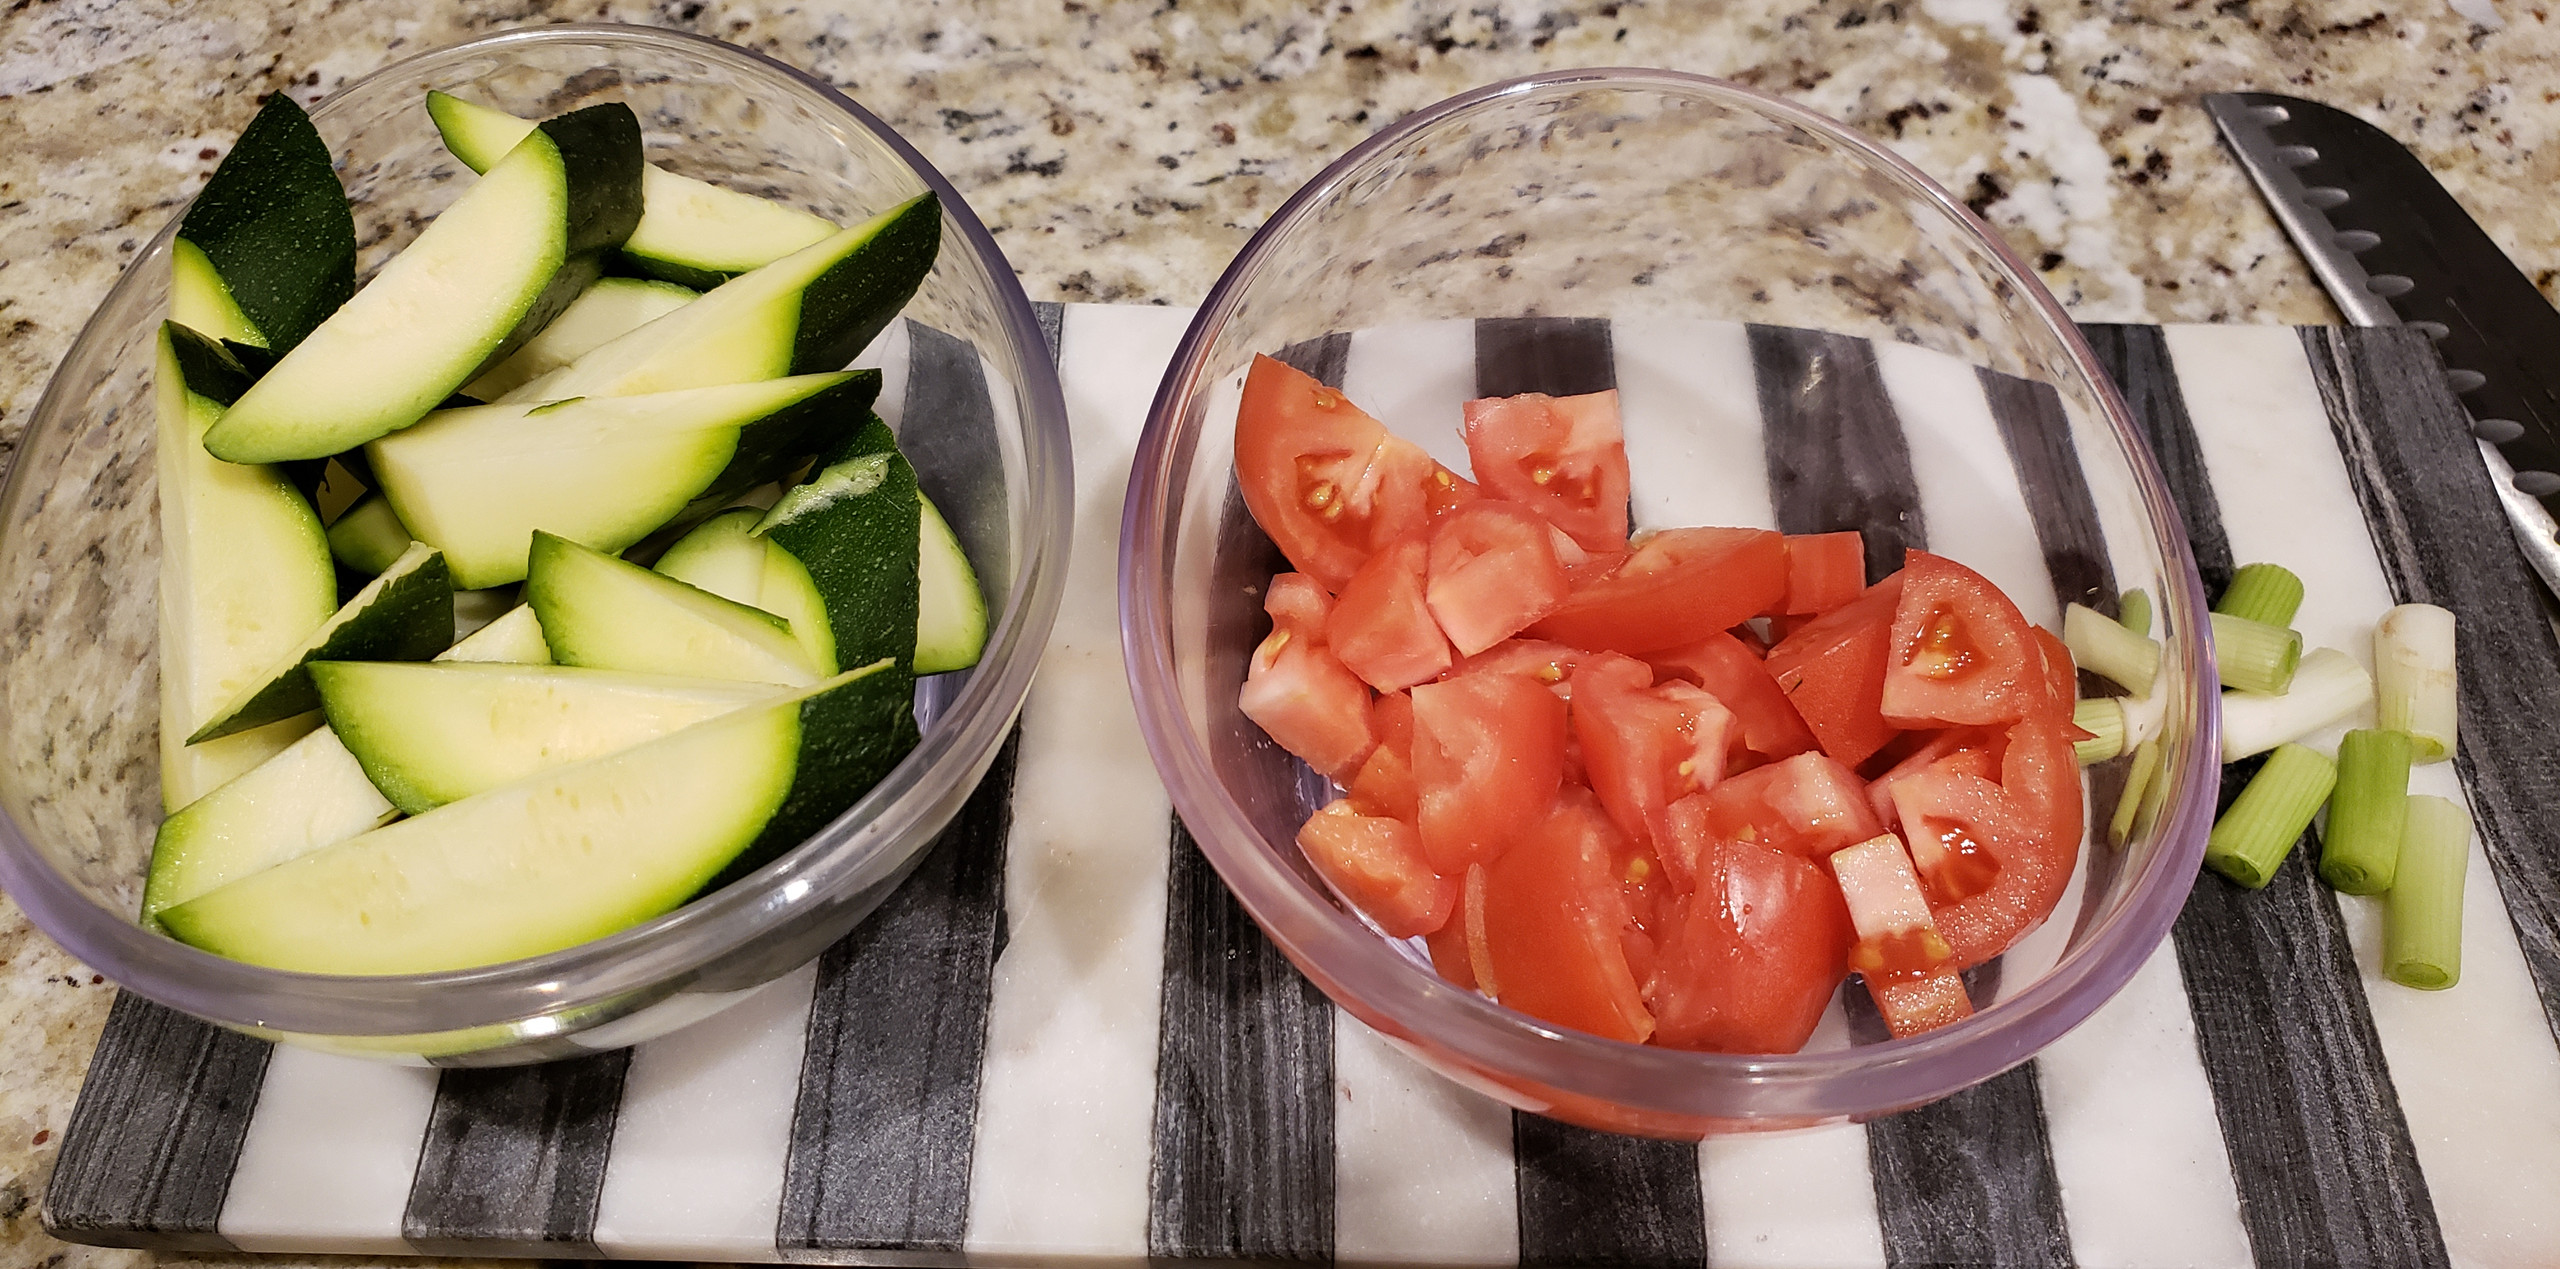 Prepping my zucchini and tomatoes before sauteing them.